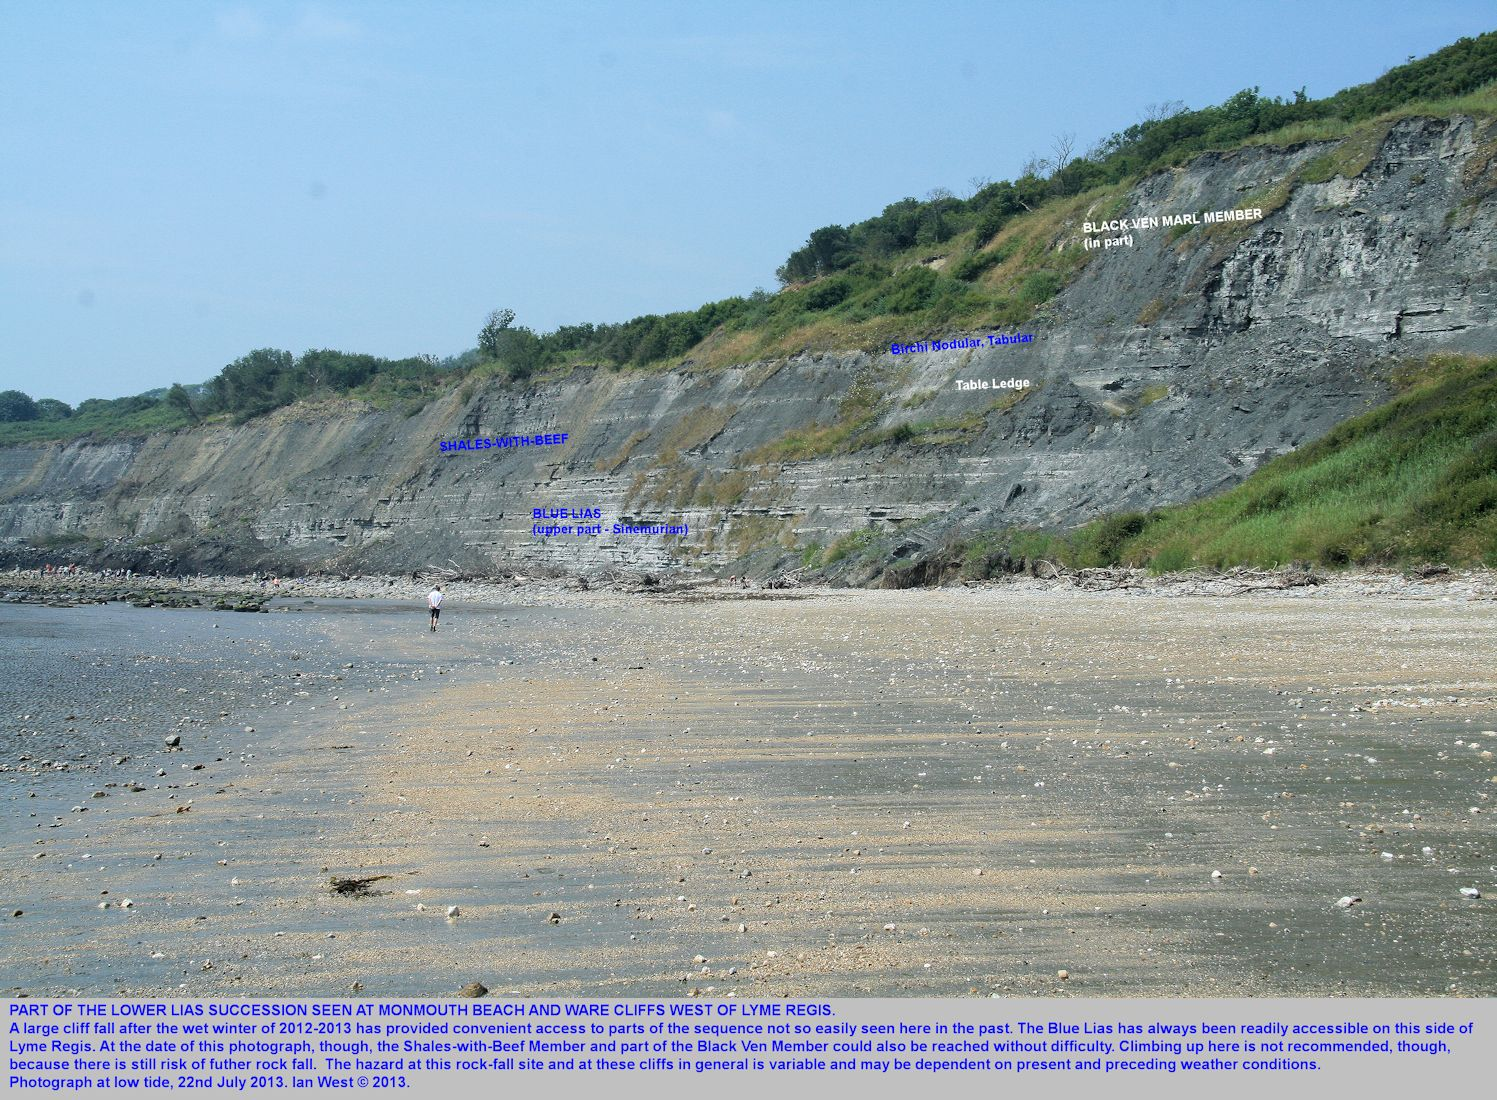 A general view of the upper part of the Blue Lias, overlain by the Shales-with-Beef, and part of the Black Ven Marl Member, above, Monmouth Beach, west of Lyme Regis, Dorset, 22nd July 2013